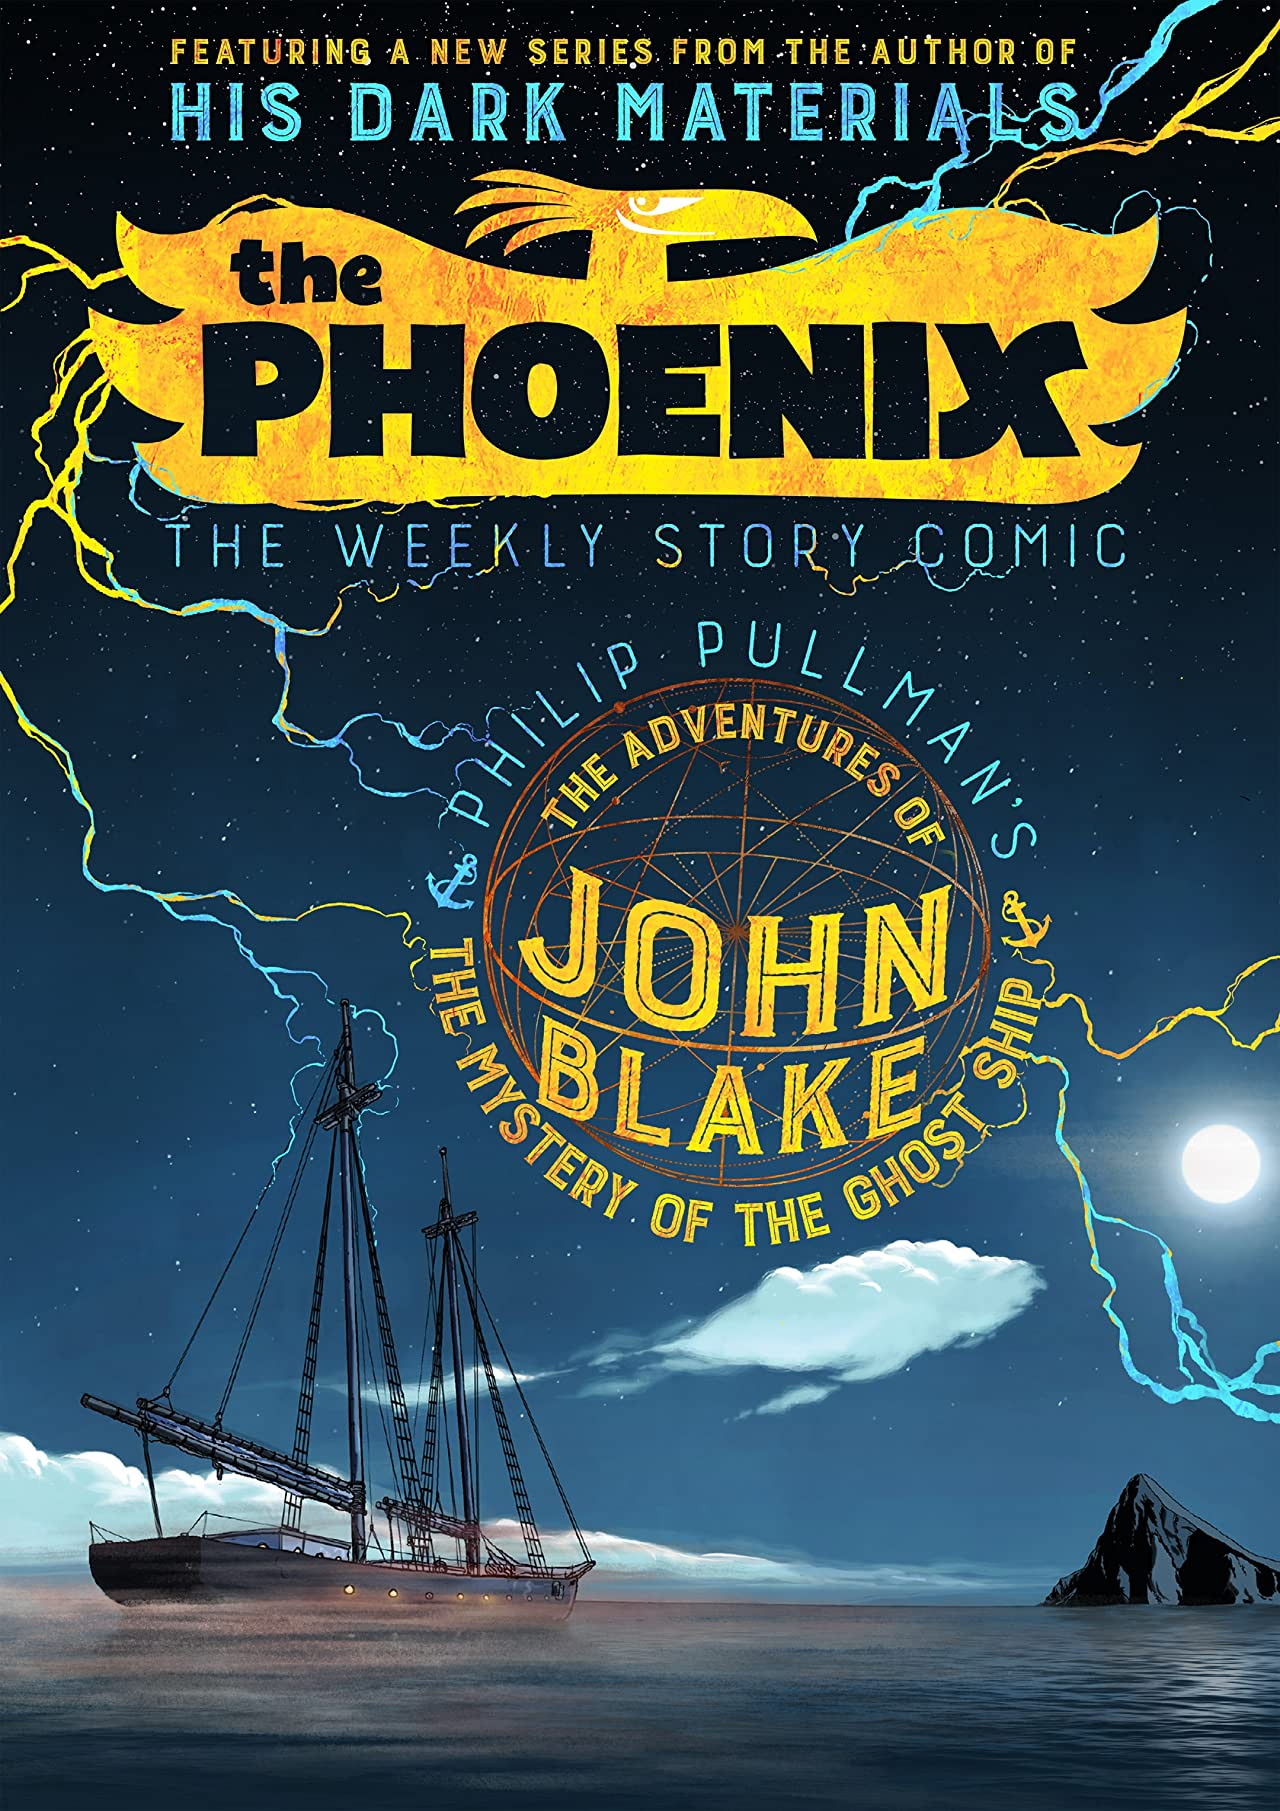 The Phoenix #233: The Weekly Story Comic